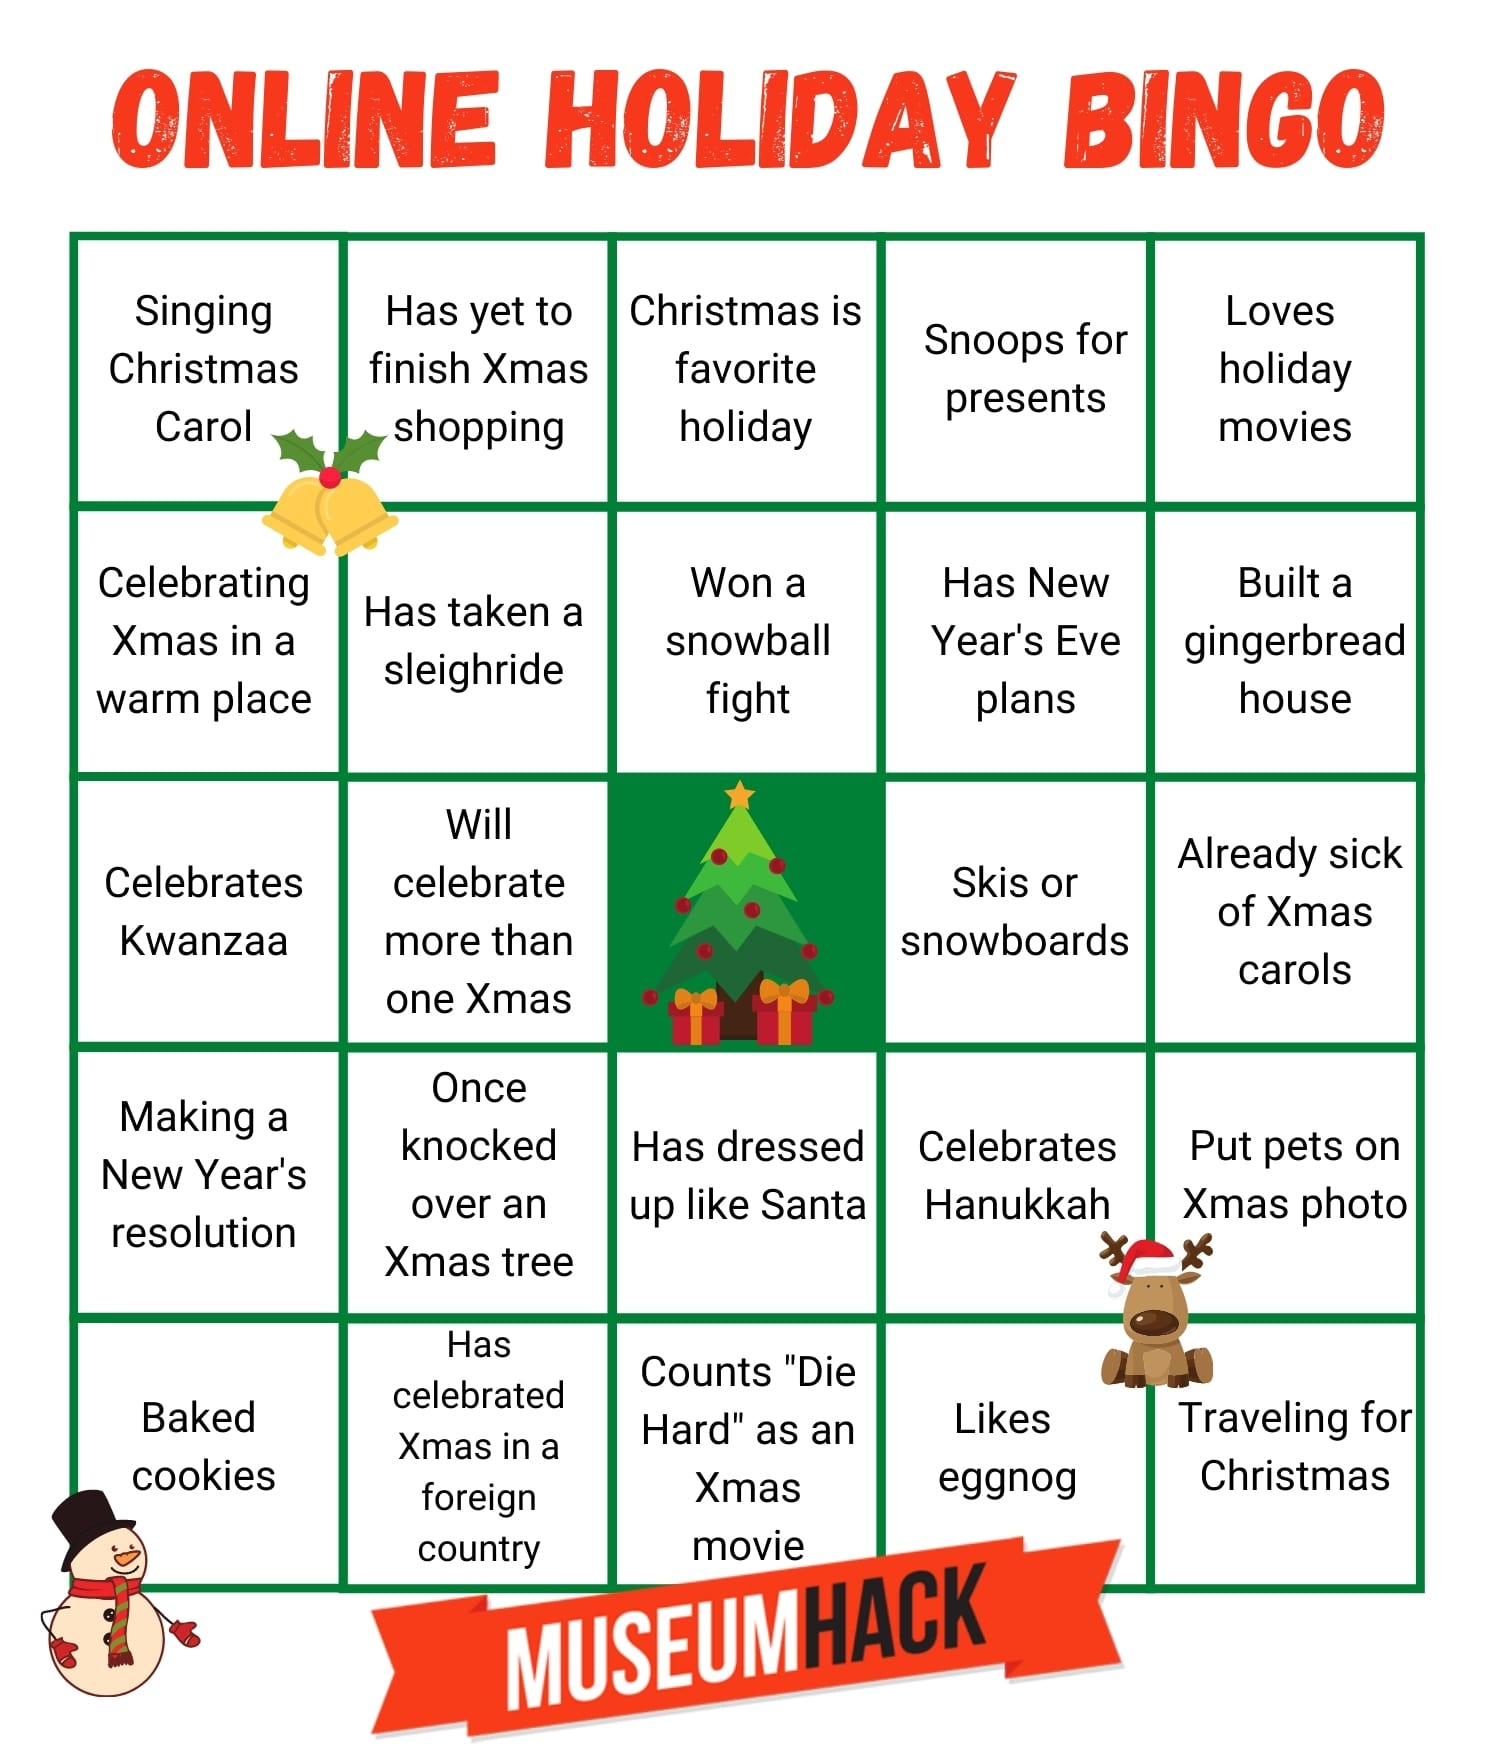 Illustration showing an online holiday bingo board